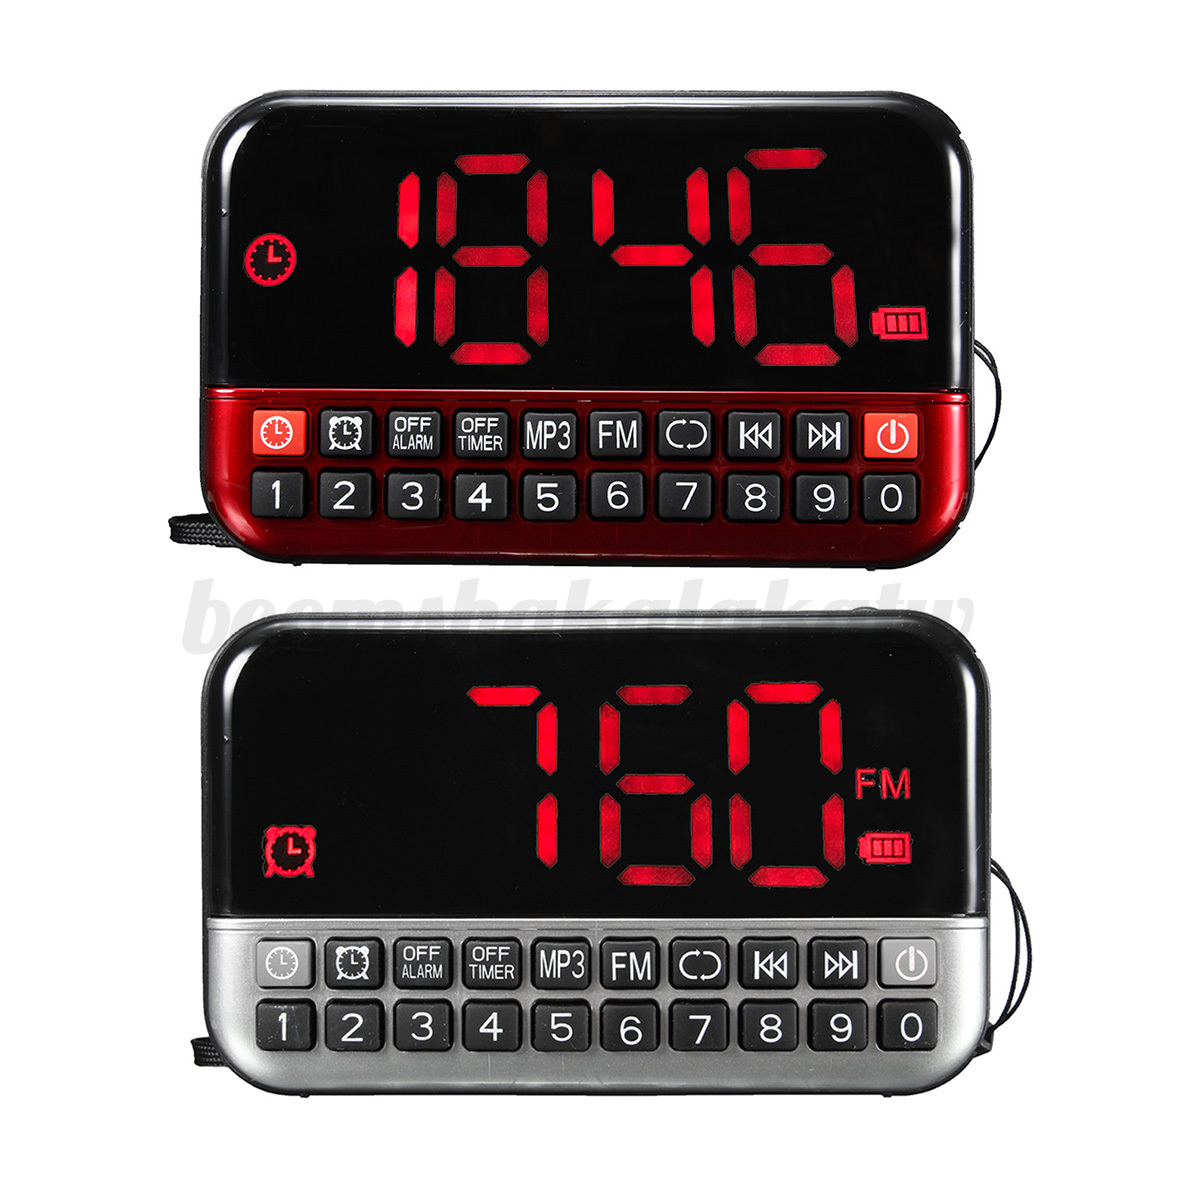 digital radio alarm clock mp3 digital fm radio alarm clock lcd screen music mp3 player digital. Black Bedroom Furniture Sets. Home Design Ideas